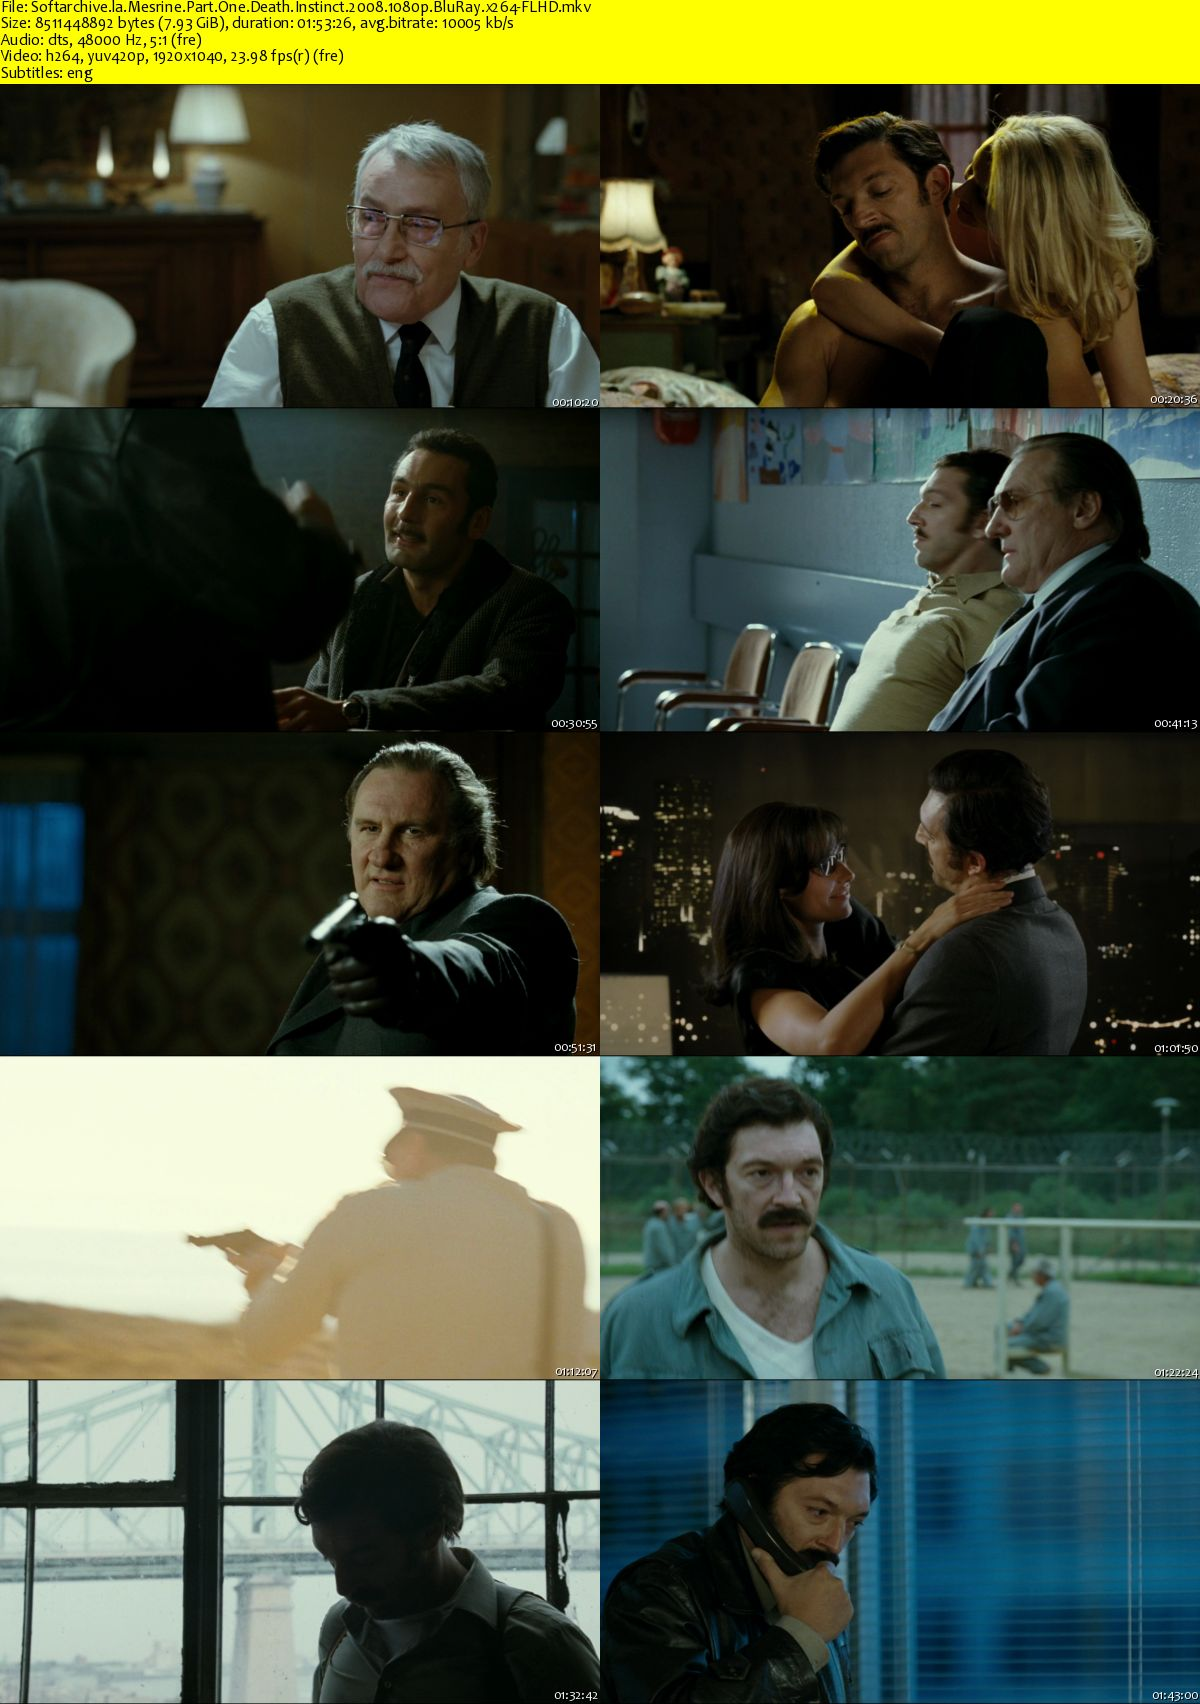 download mesrine part one death instinct 2008 1080p bluray